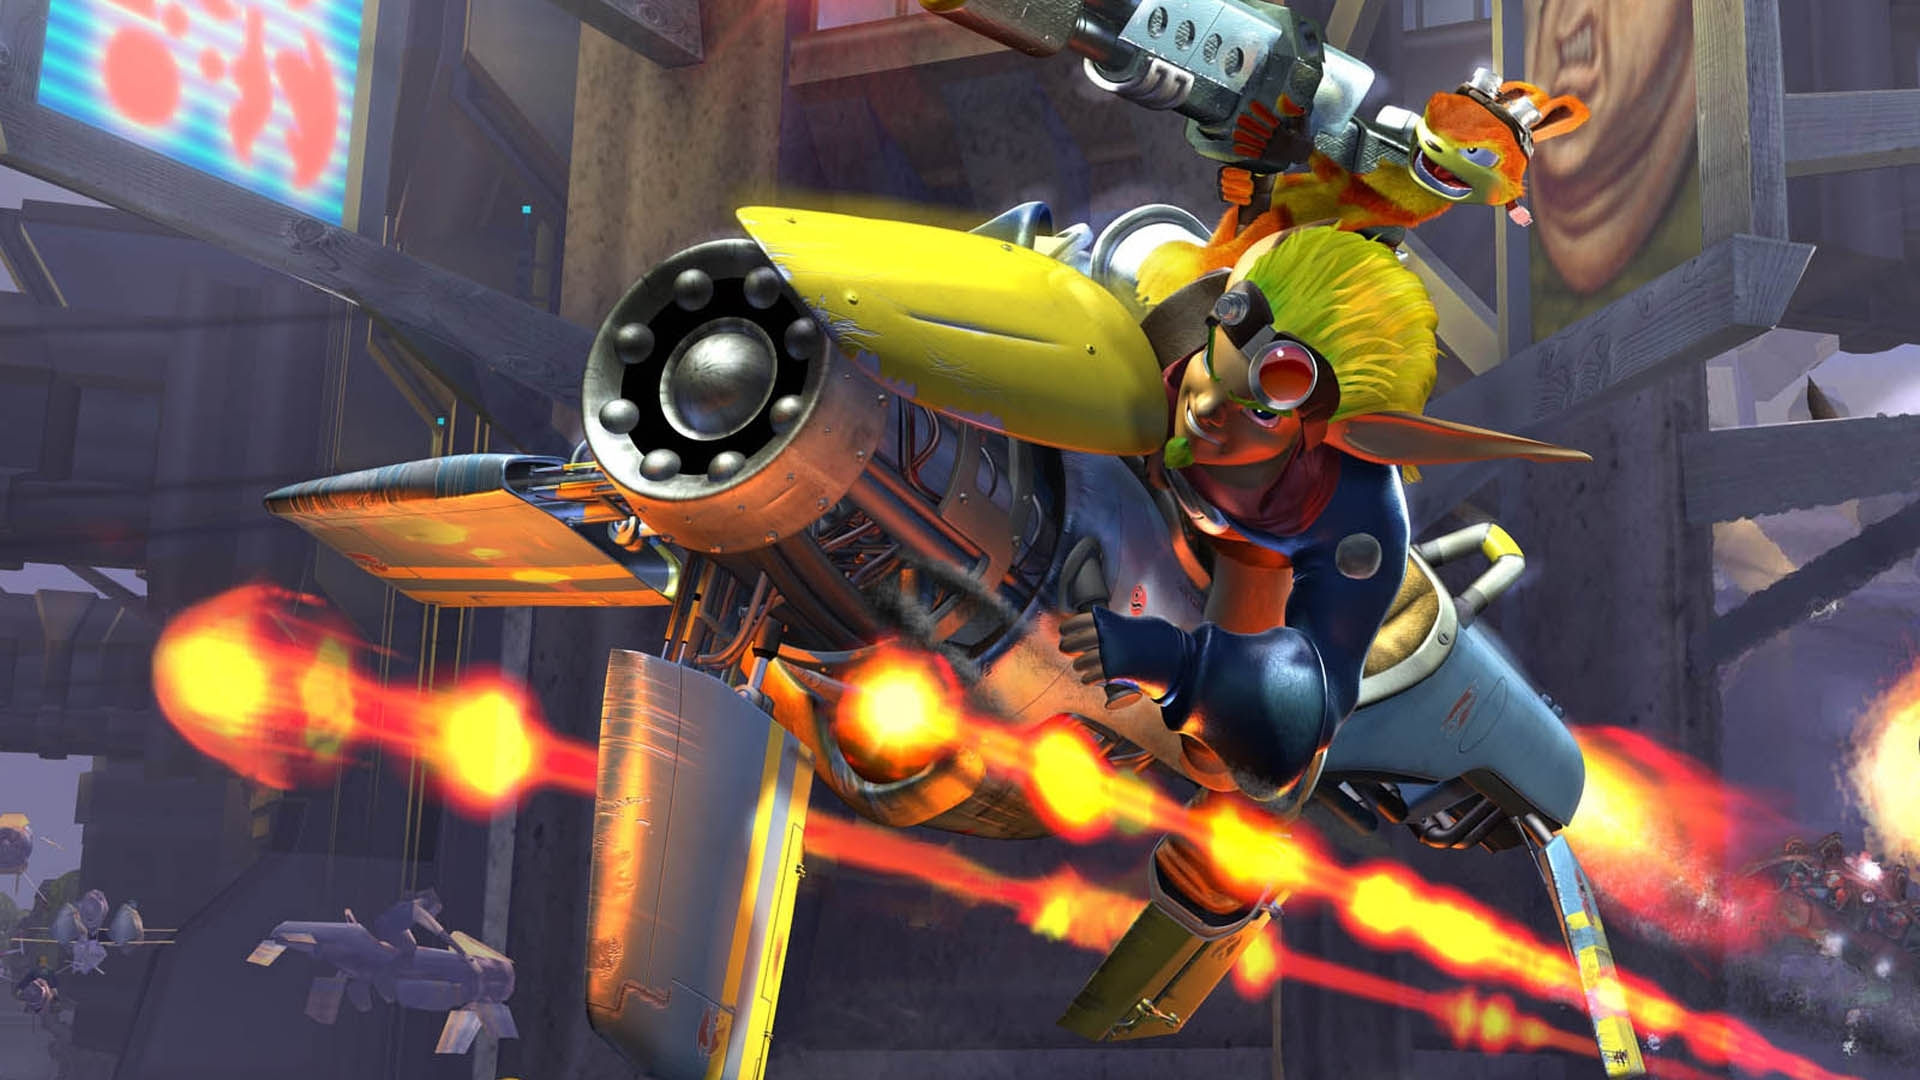 jak ii full hd wallpaper and background image | 1920x1080 | id:567243